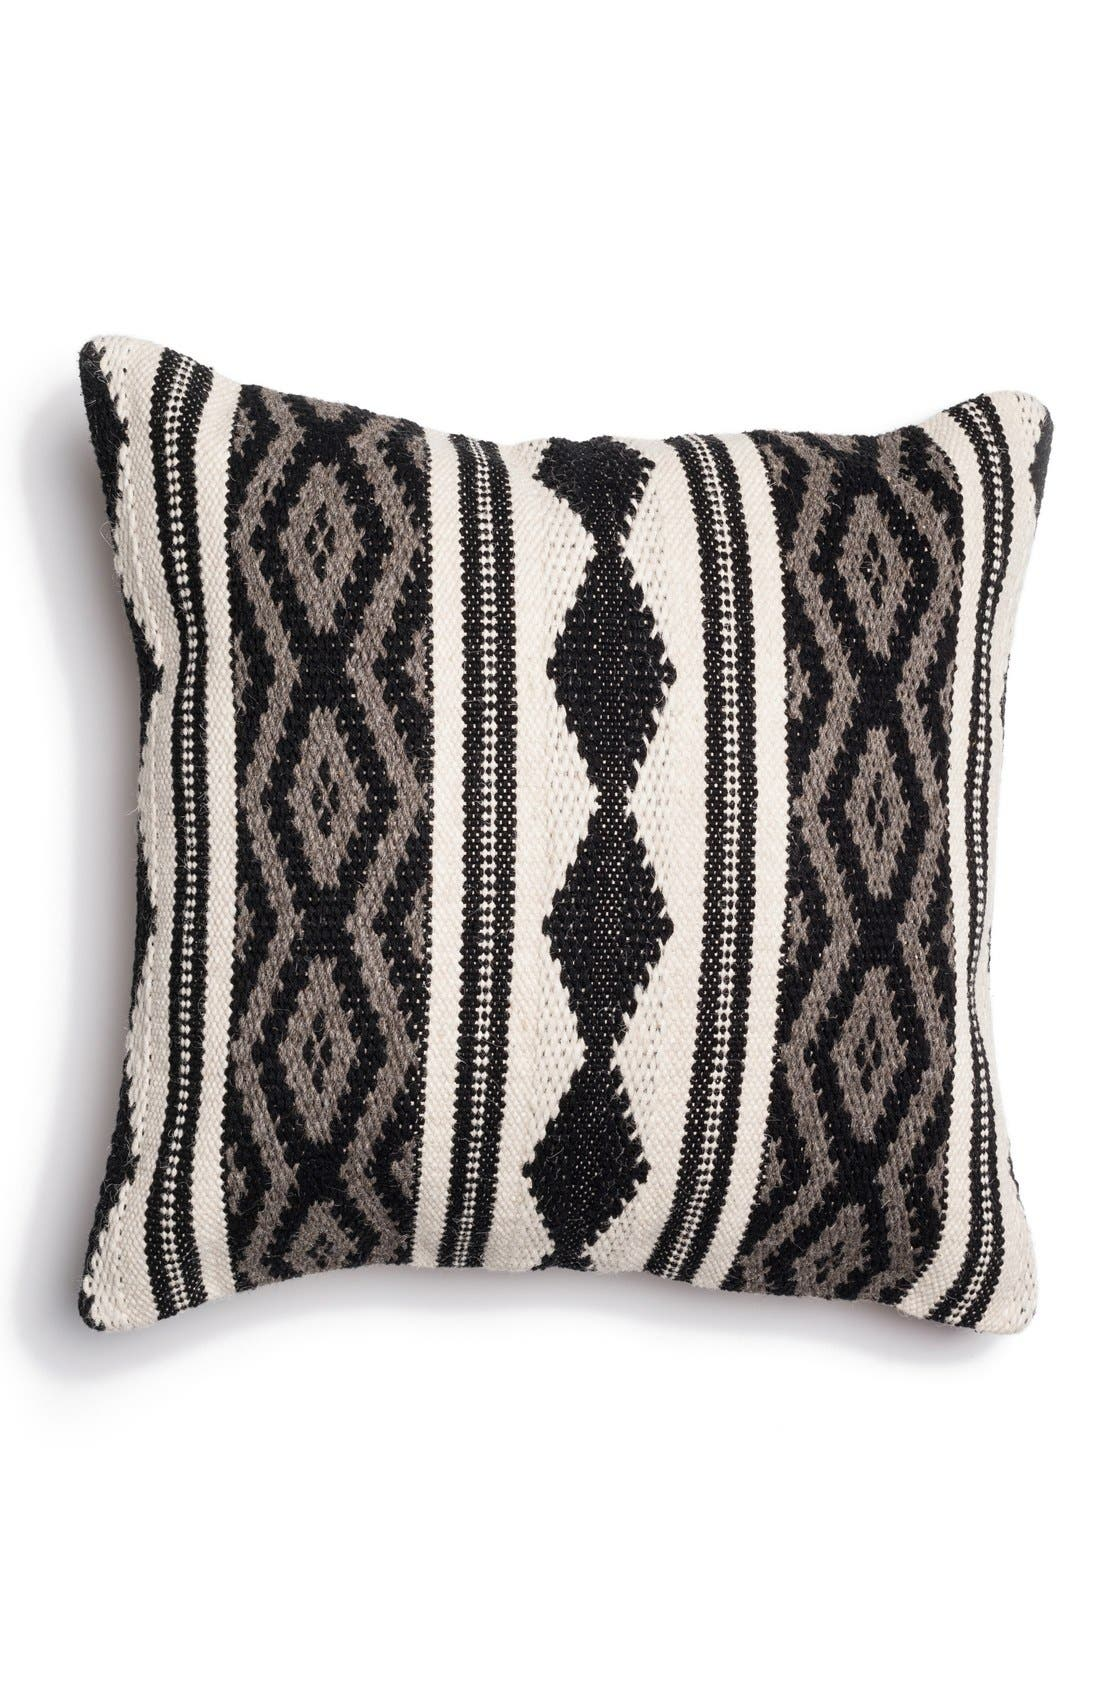 Main Image - Loloi Woven Cotton & Wool Accent Pillow